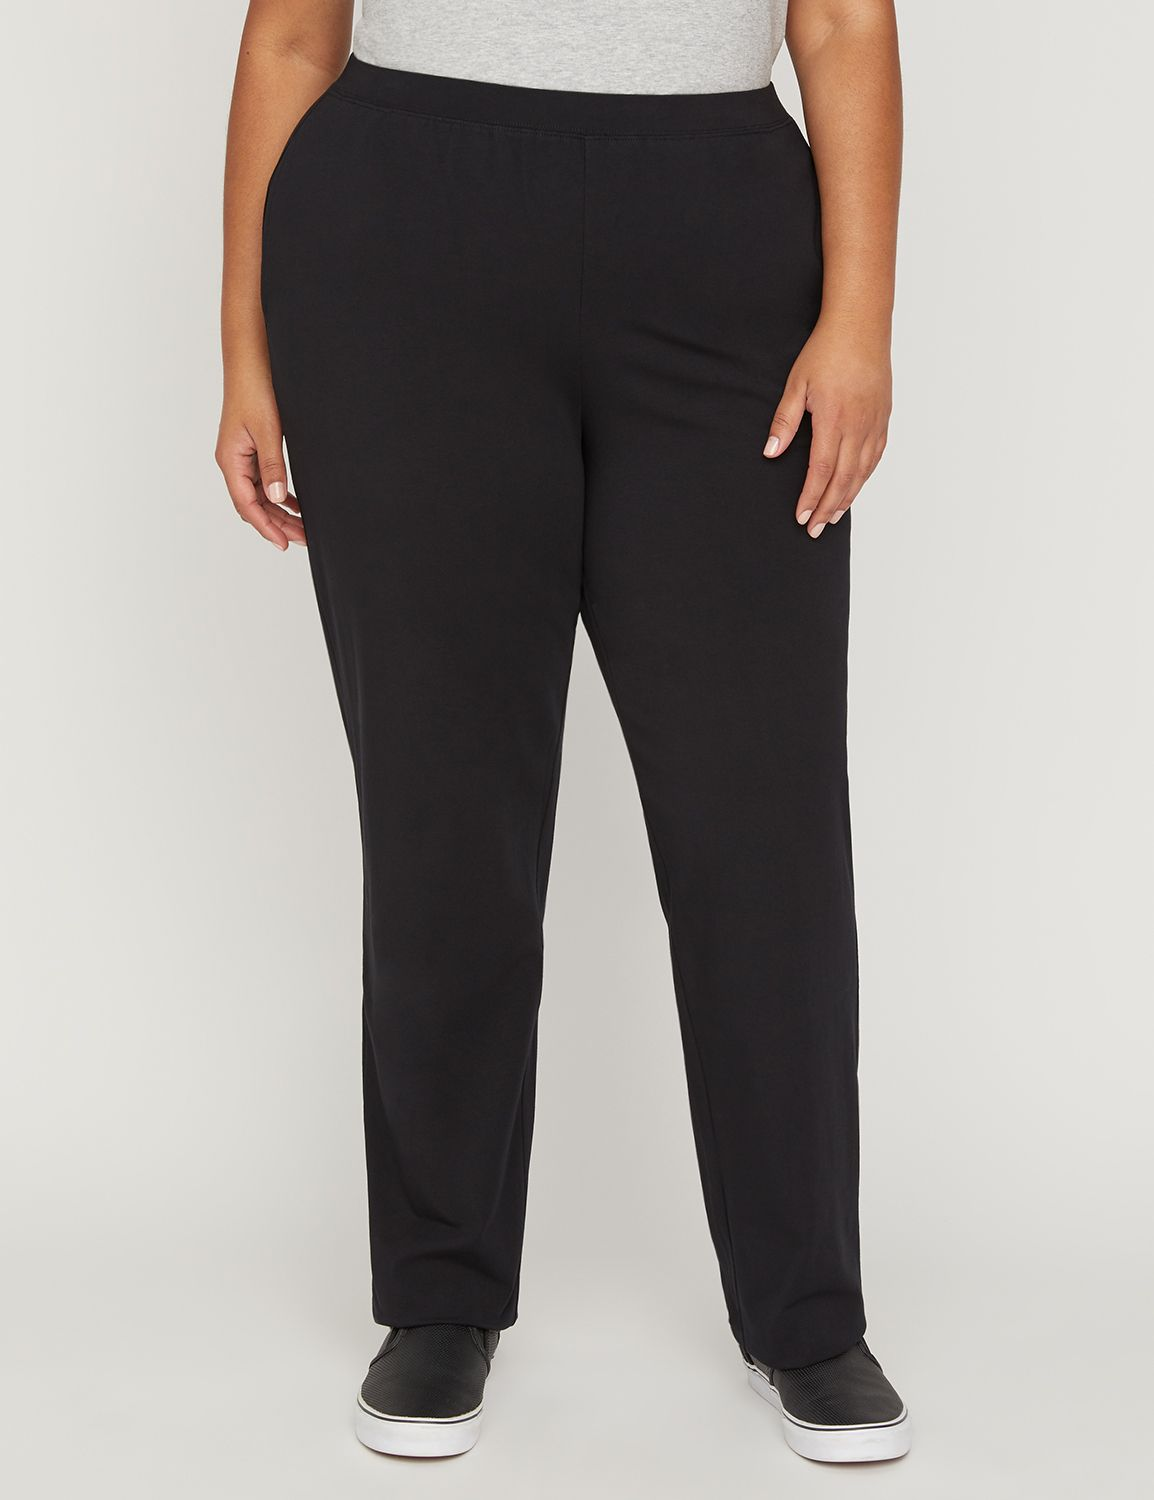 Suprema Knit Pant (Classic Colors) Suprema Knit Pant (Classic Colors) MP-300009689